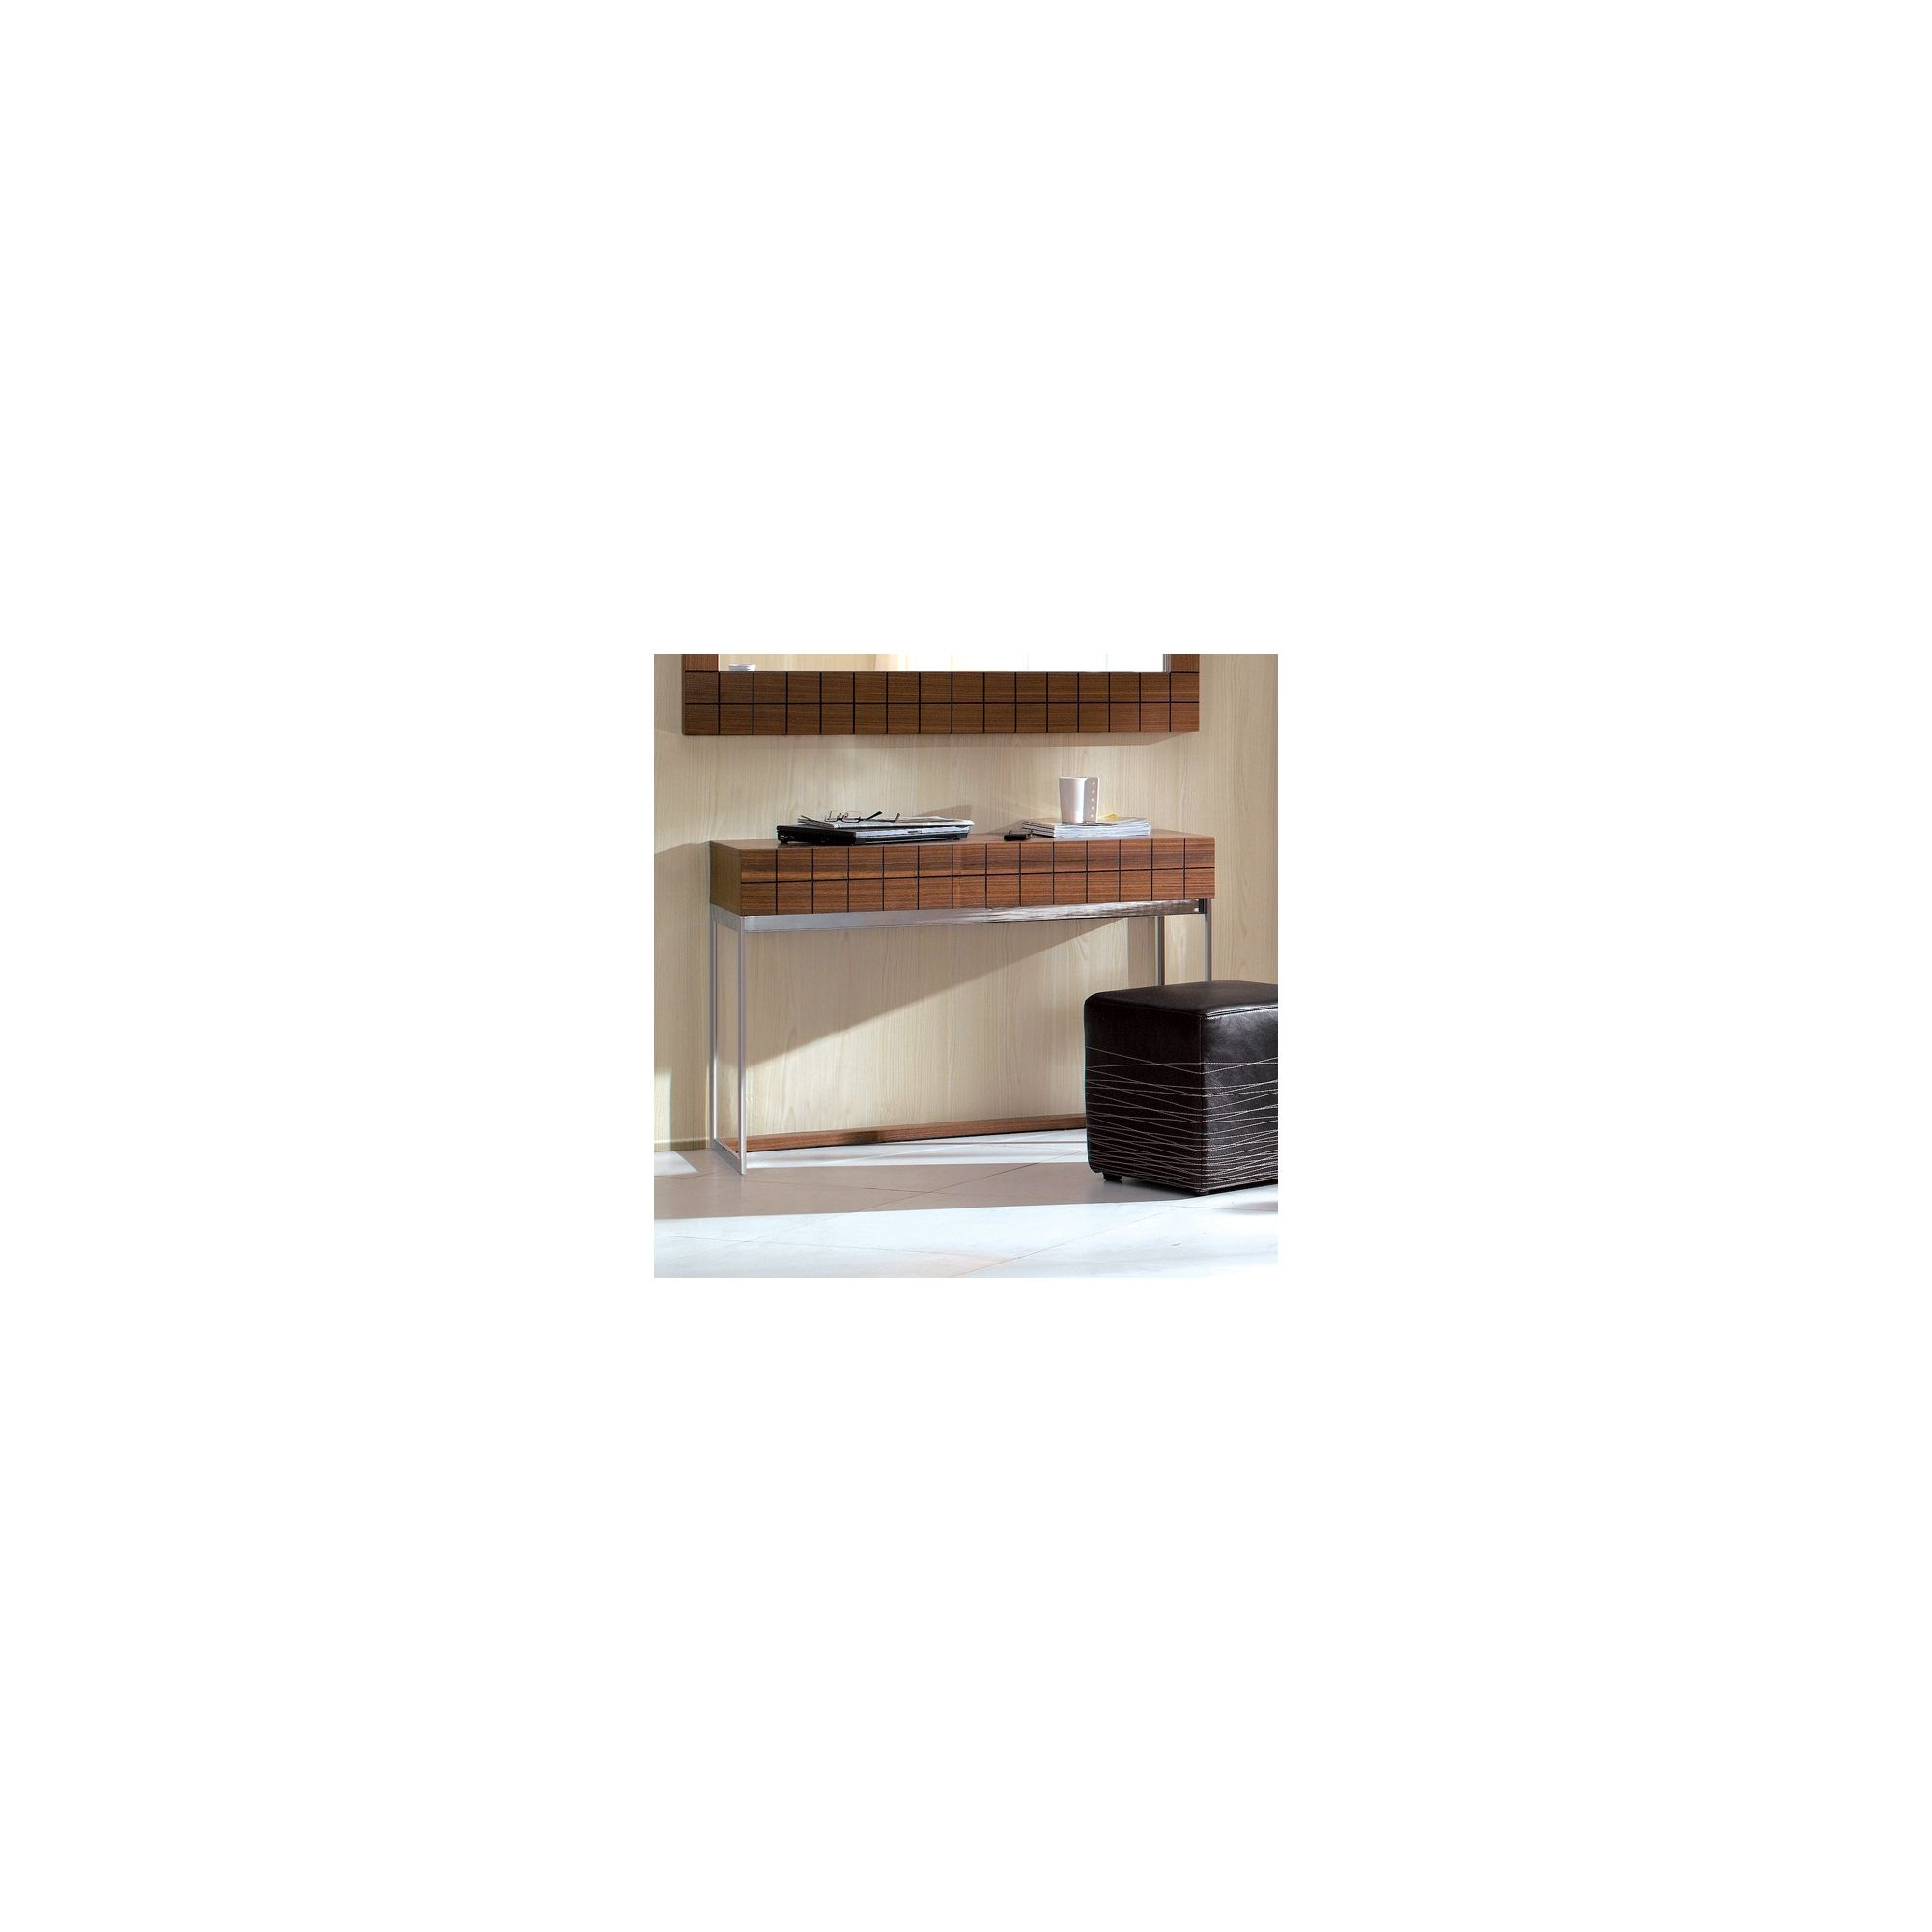 Gillmore Space Barcelona Dressing Table - Walnut at Tesco Direct